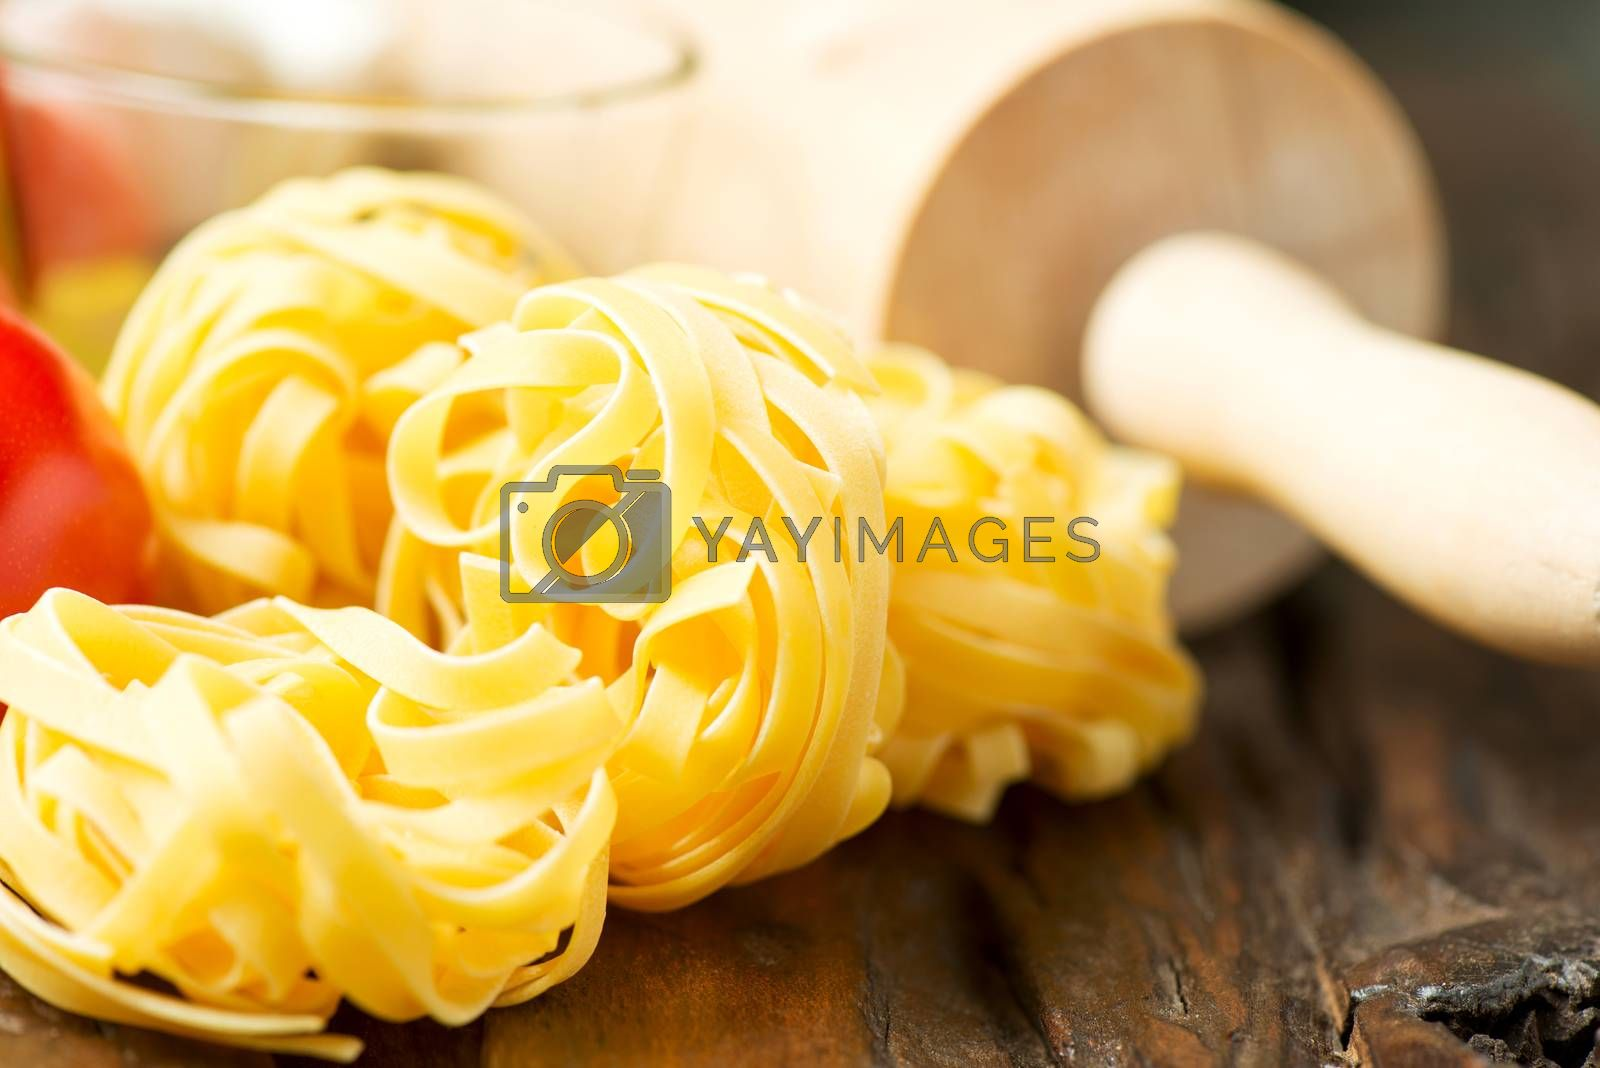 Royalty free image of Ingredients for cooking by Nanisimova